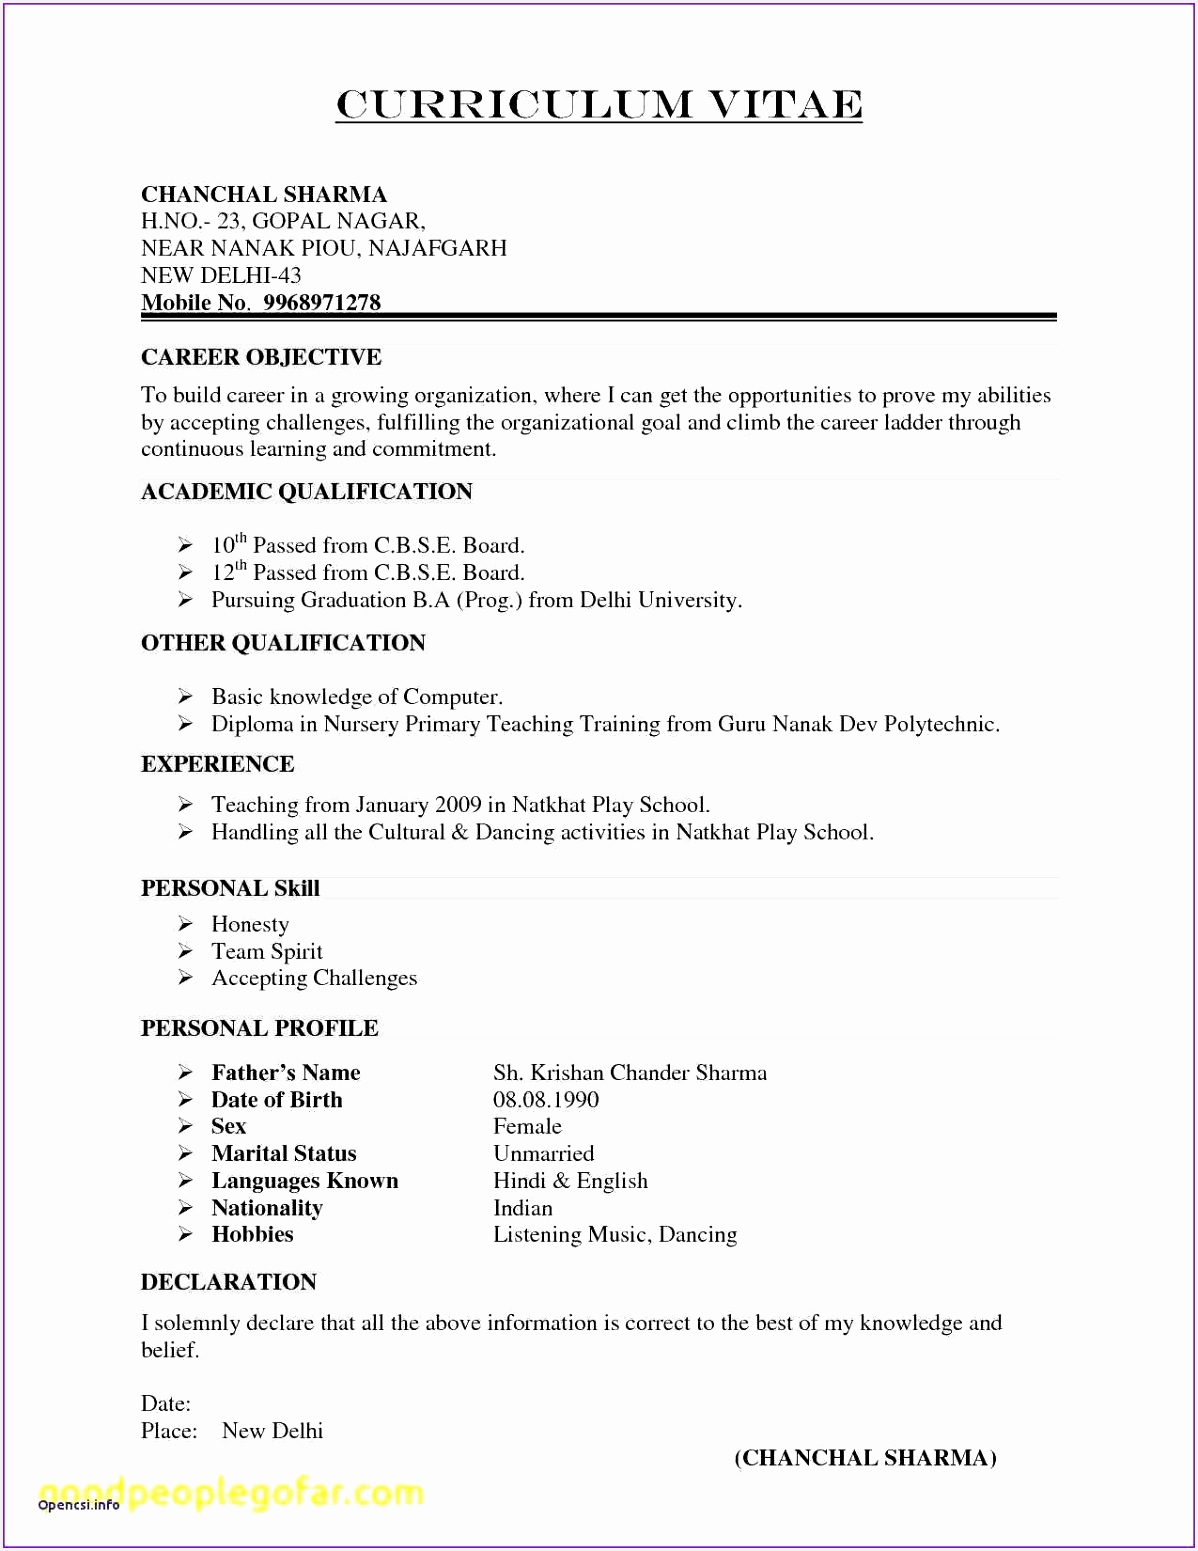 Microsoft Trainer Sample Resume Dcwig Elegant 53 Elegant Microsoft Word Free Resume Templates Awesome Resume Of Microsoft Trainer Sample Resume F8yka New Resume Examples Skills Best Skills and Interests Resume Sample